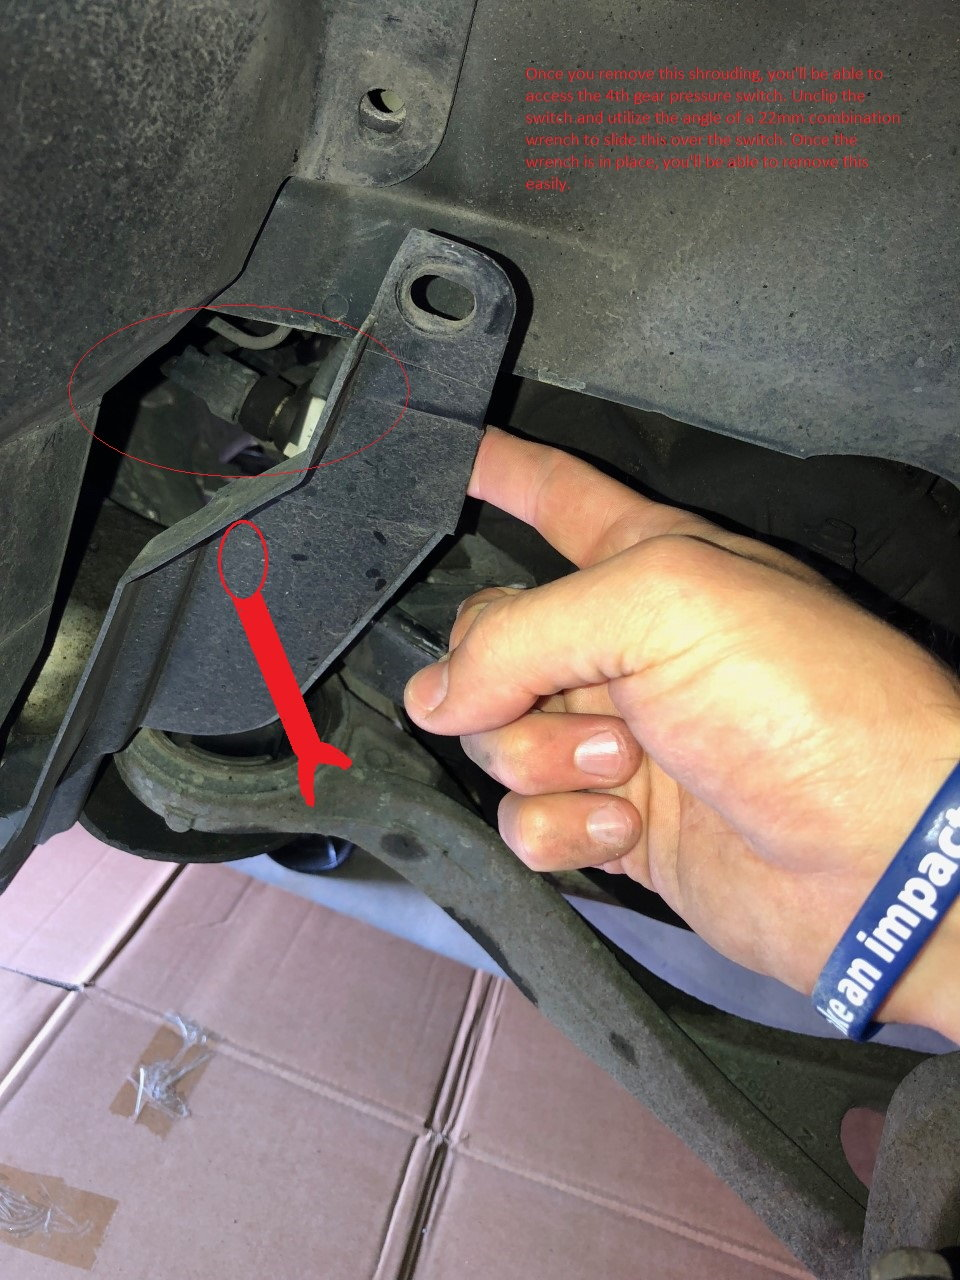 A-110(a): DIY Guide to replacing 3rd & 4th gear pressure